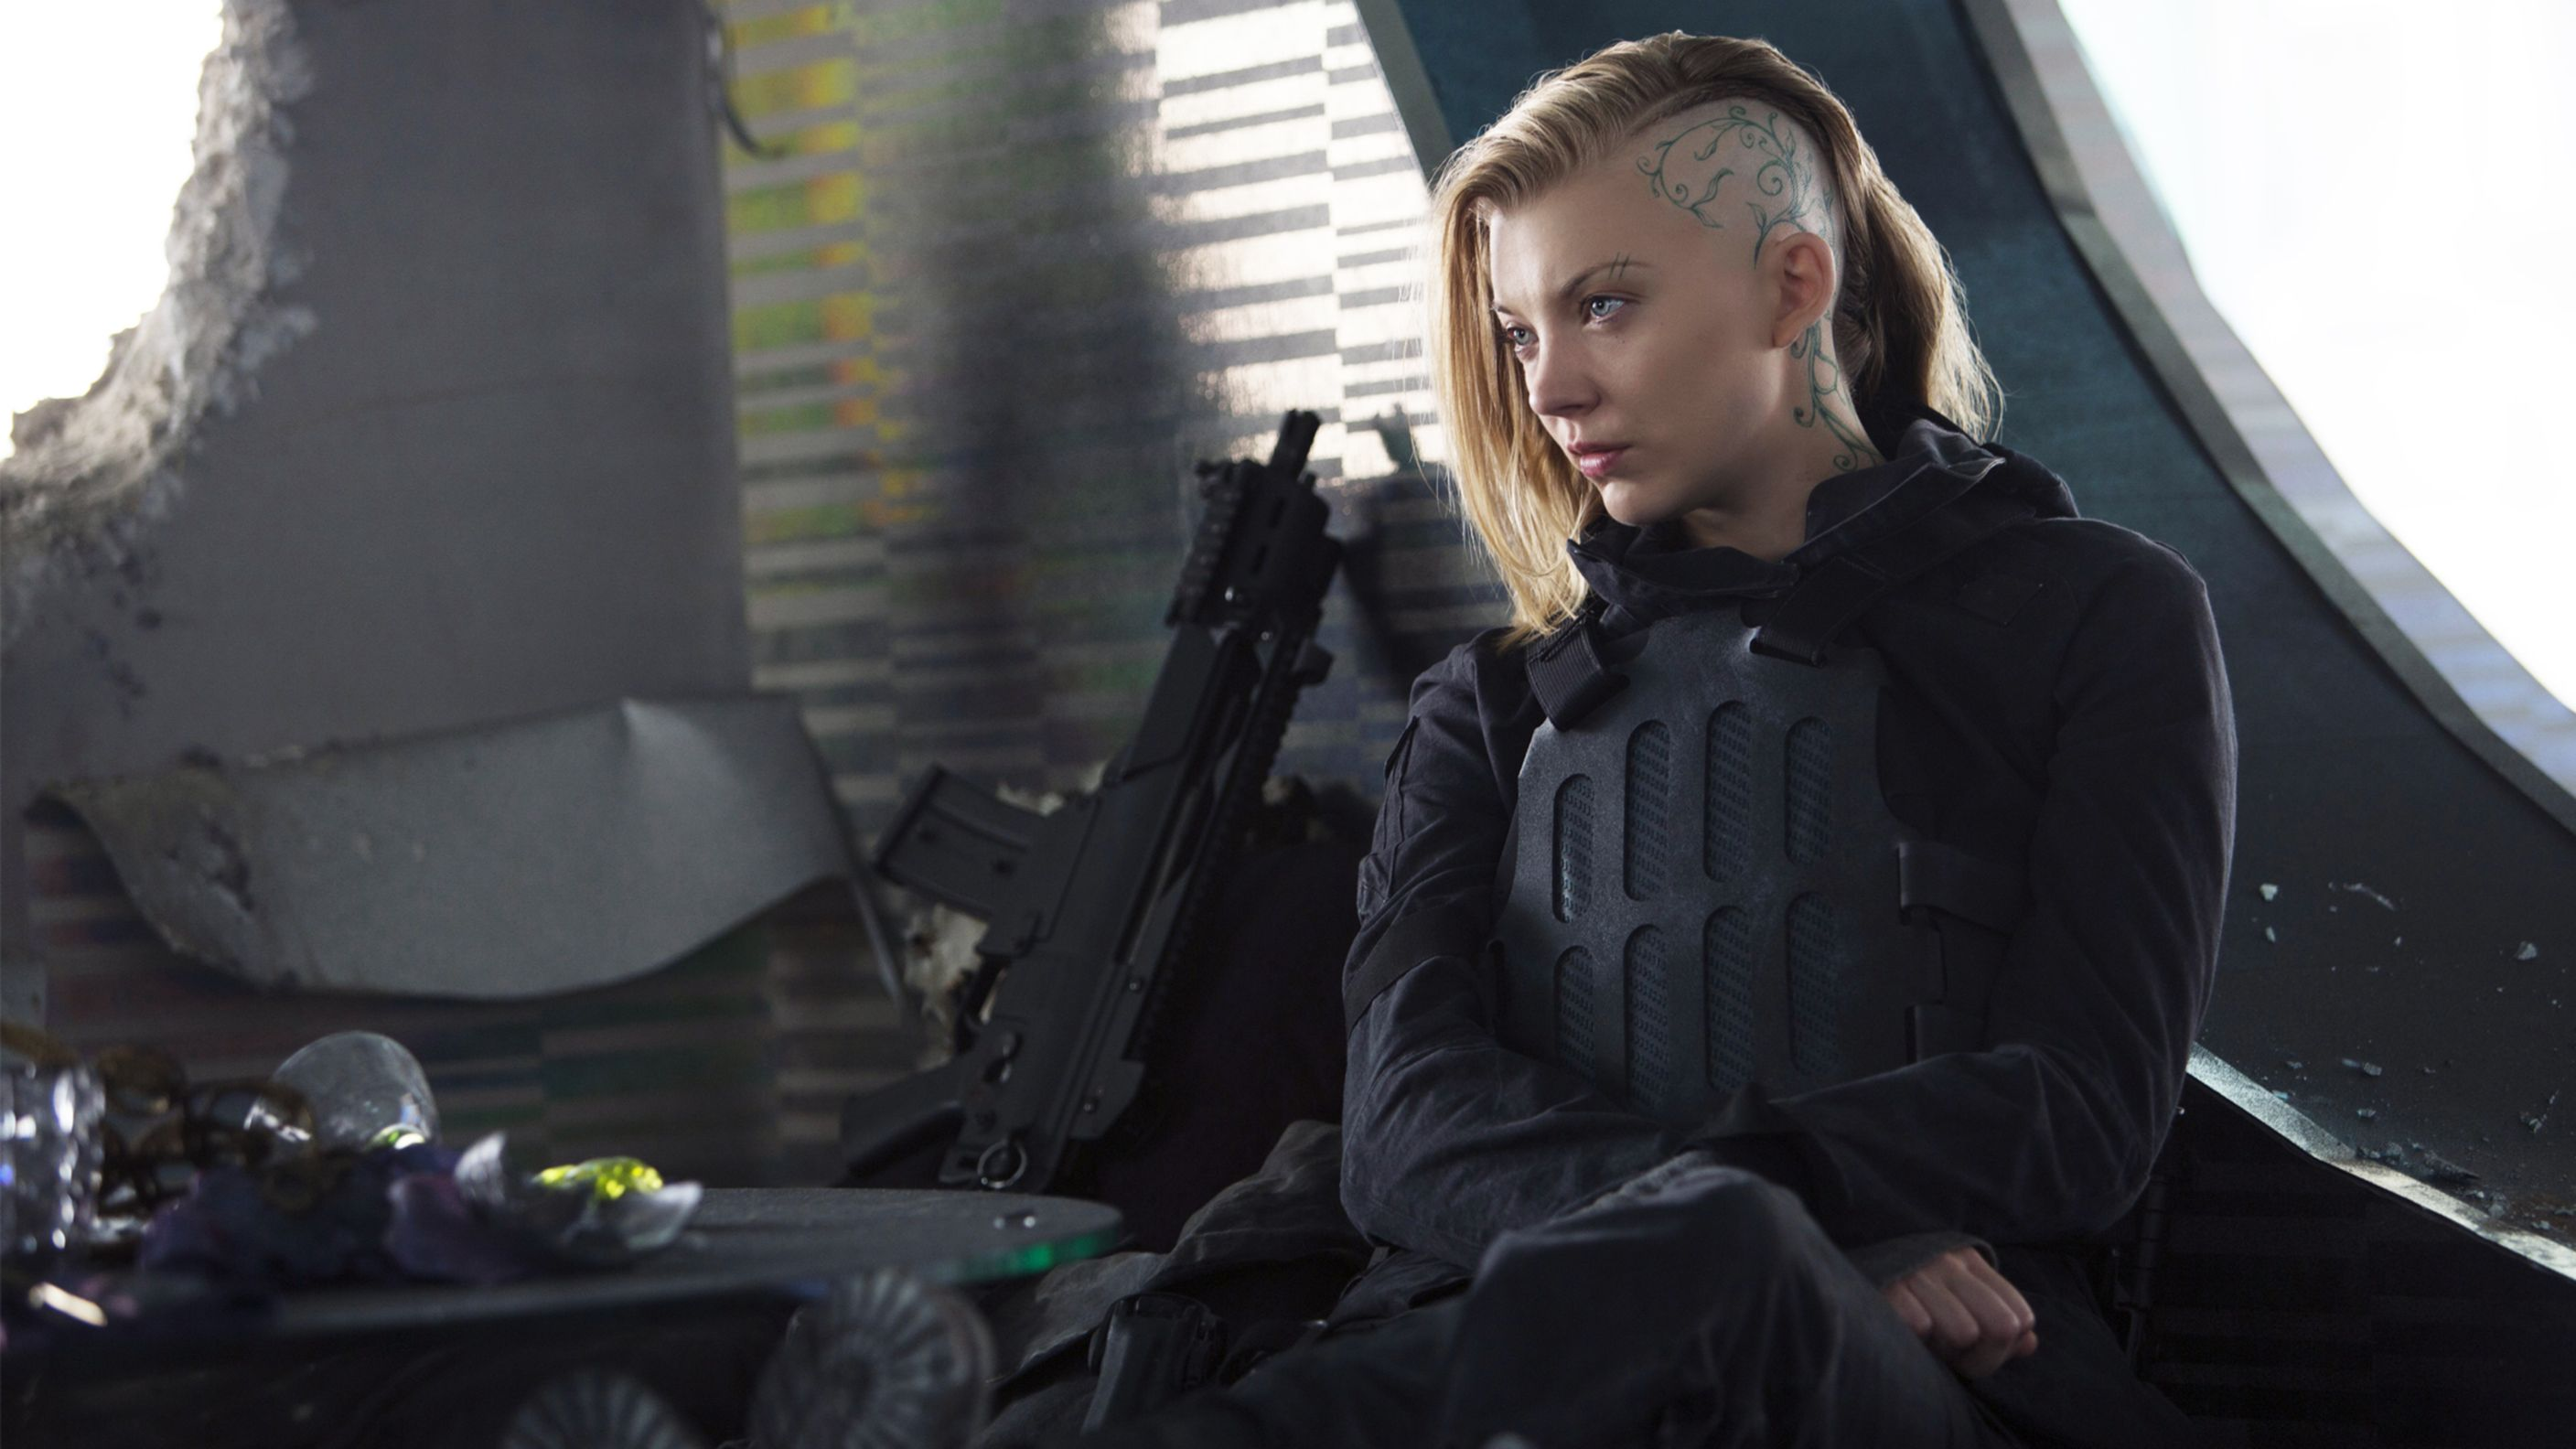 Download free HD Natalie Dormer Cressida Mockingjay Part 2 HD Wallpaper, image